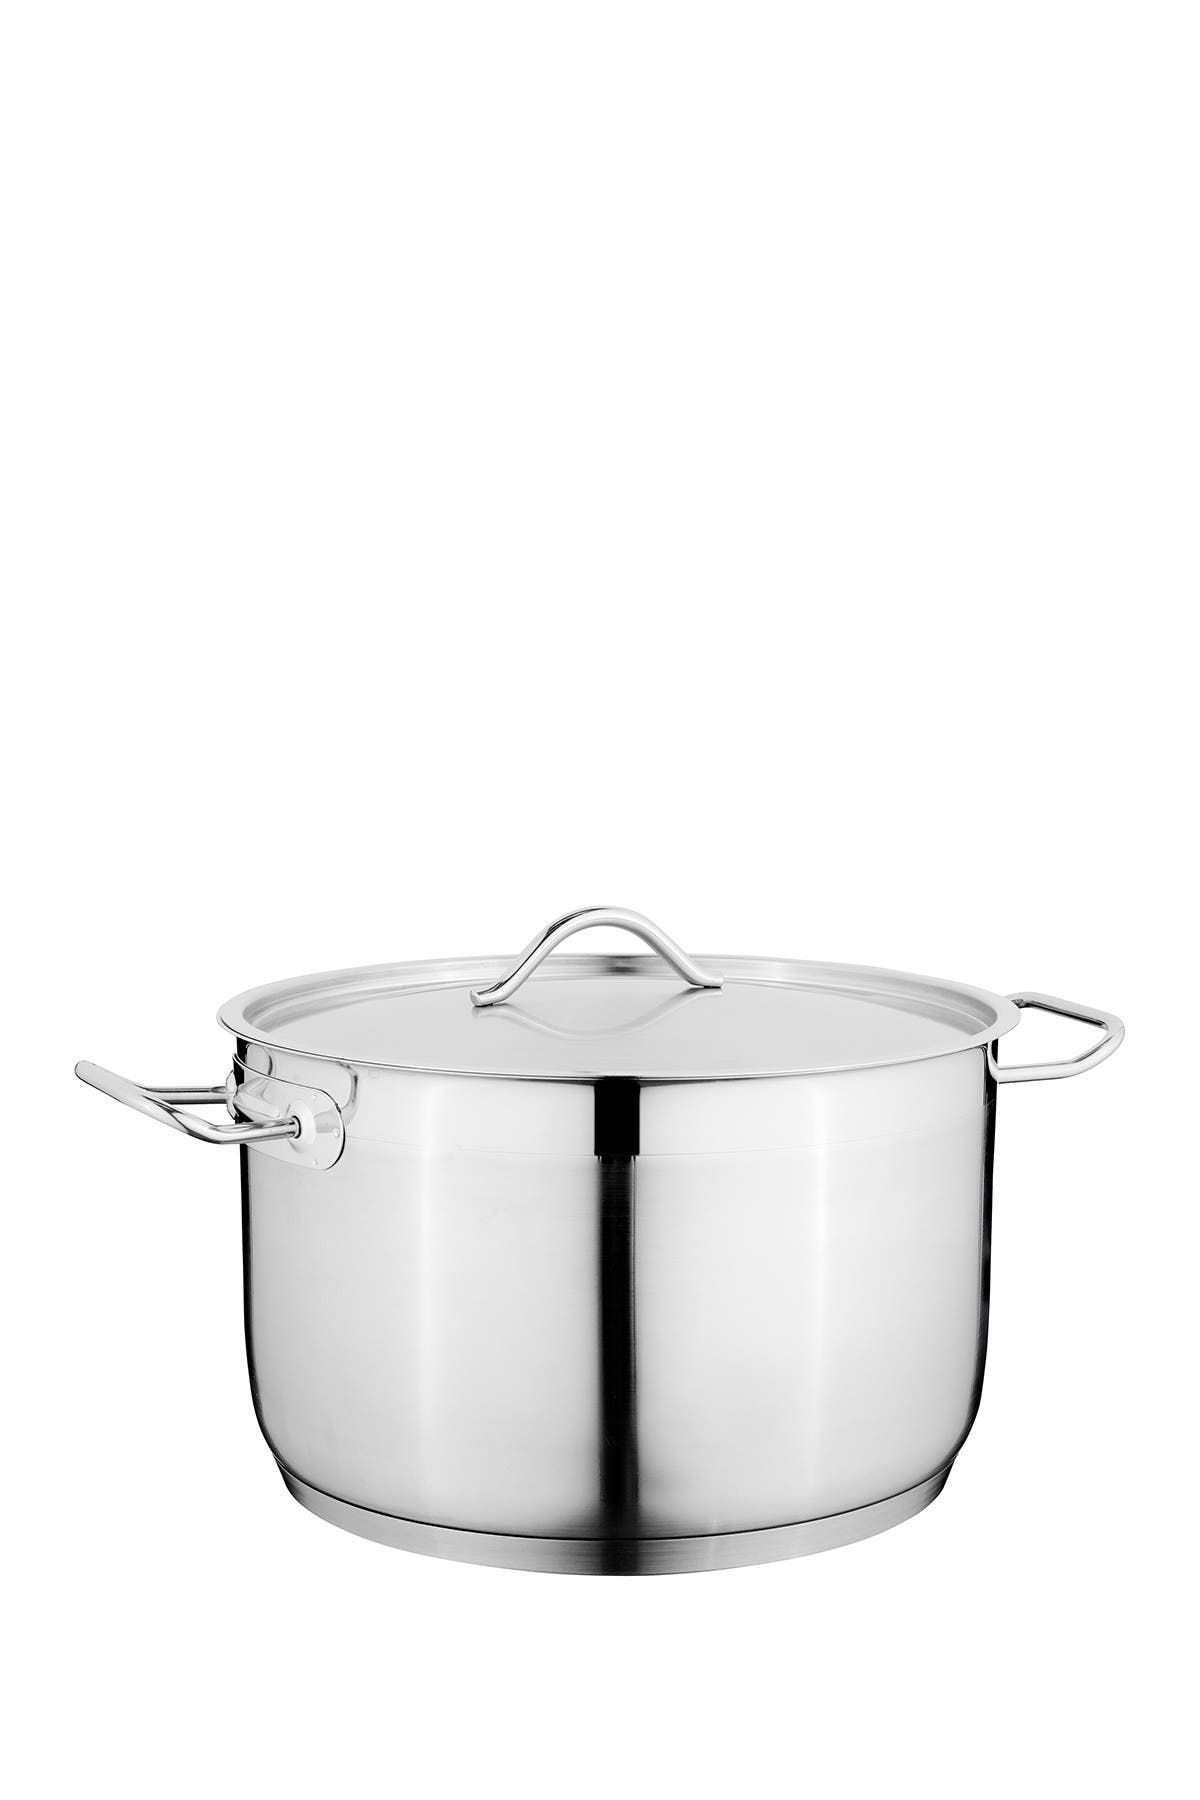 Image of BergHOFF Silver Hotel 11qt. Stainless Steel Covered Casserole